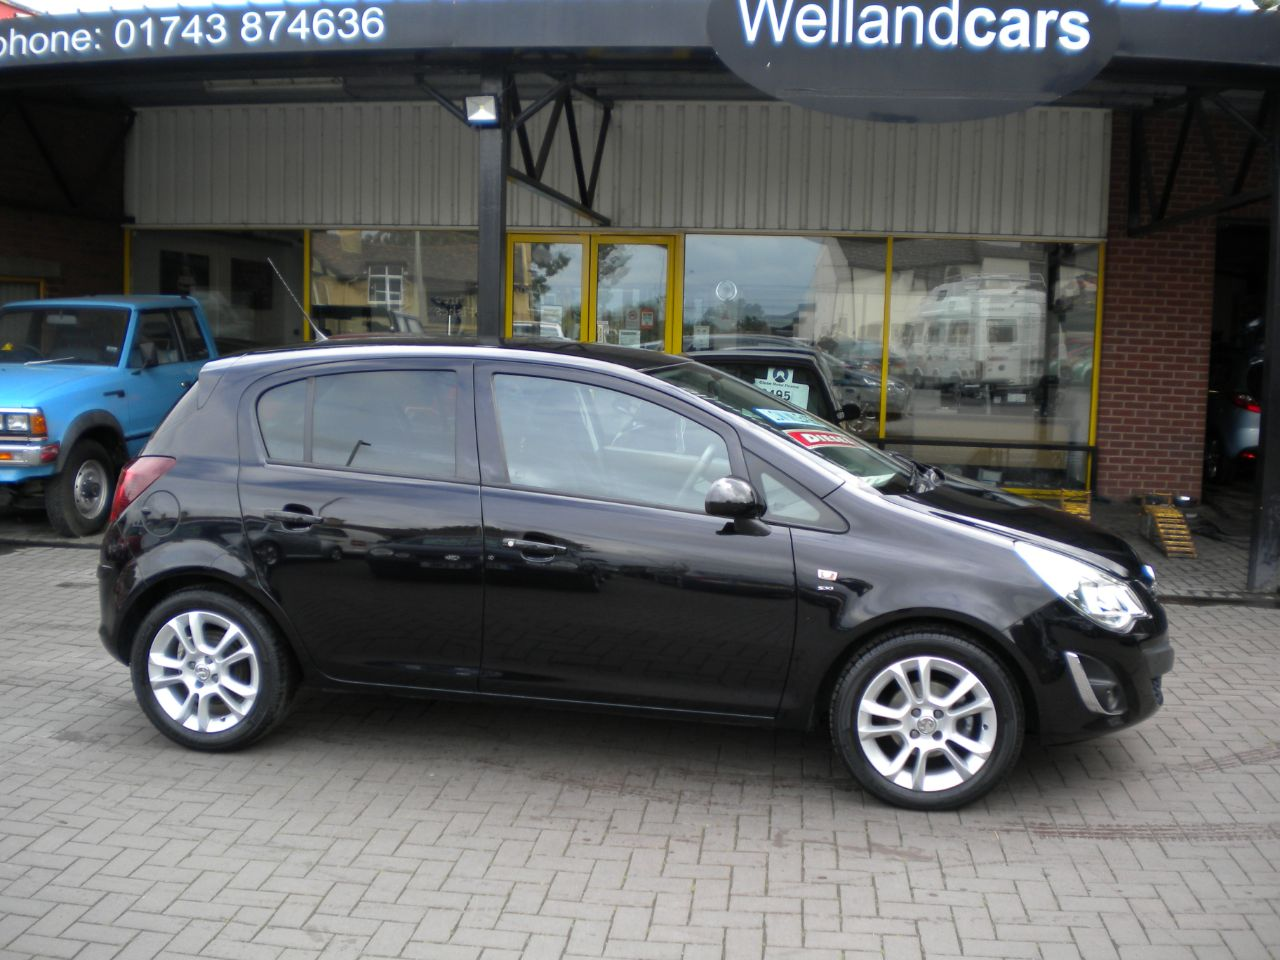 Vauxhall Corsa 1.3 CDTi ecoFLEX SXi 5dr [AC] F/S/H, Low Miles,15 MONTH PARTS AND LABOUR WARRANTY INCLUDED Hatchback Diesel Black at Welland Cars Shrewsbury